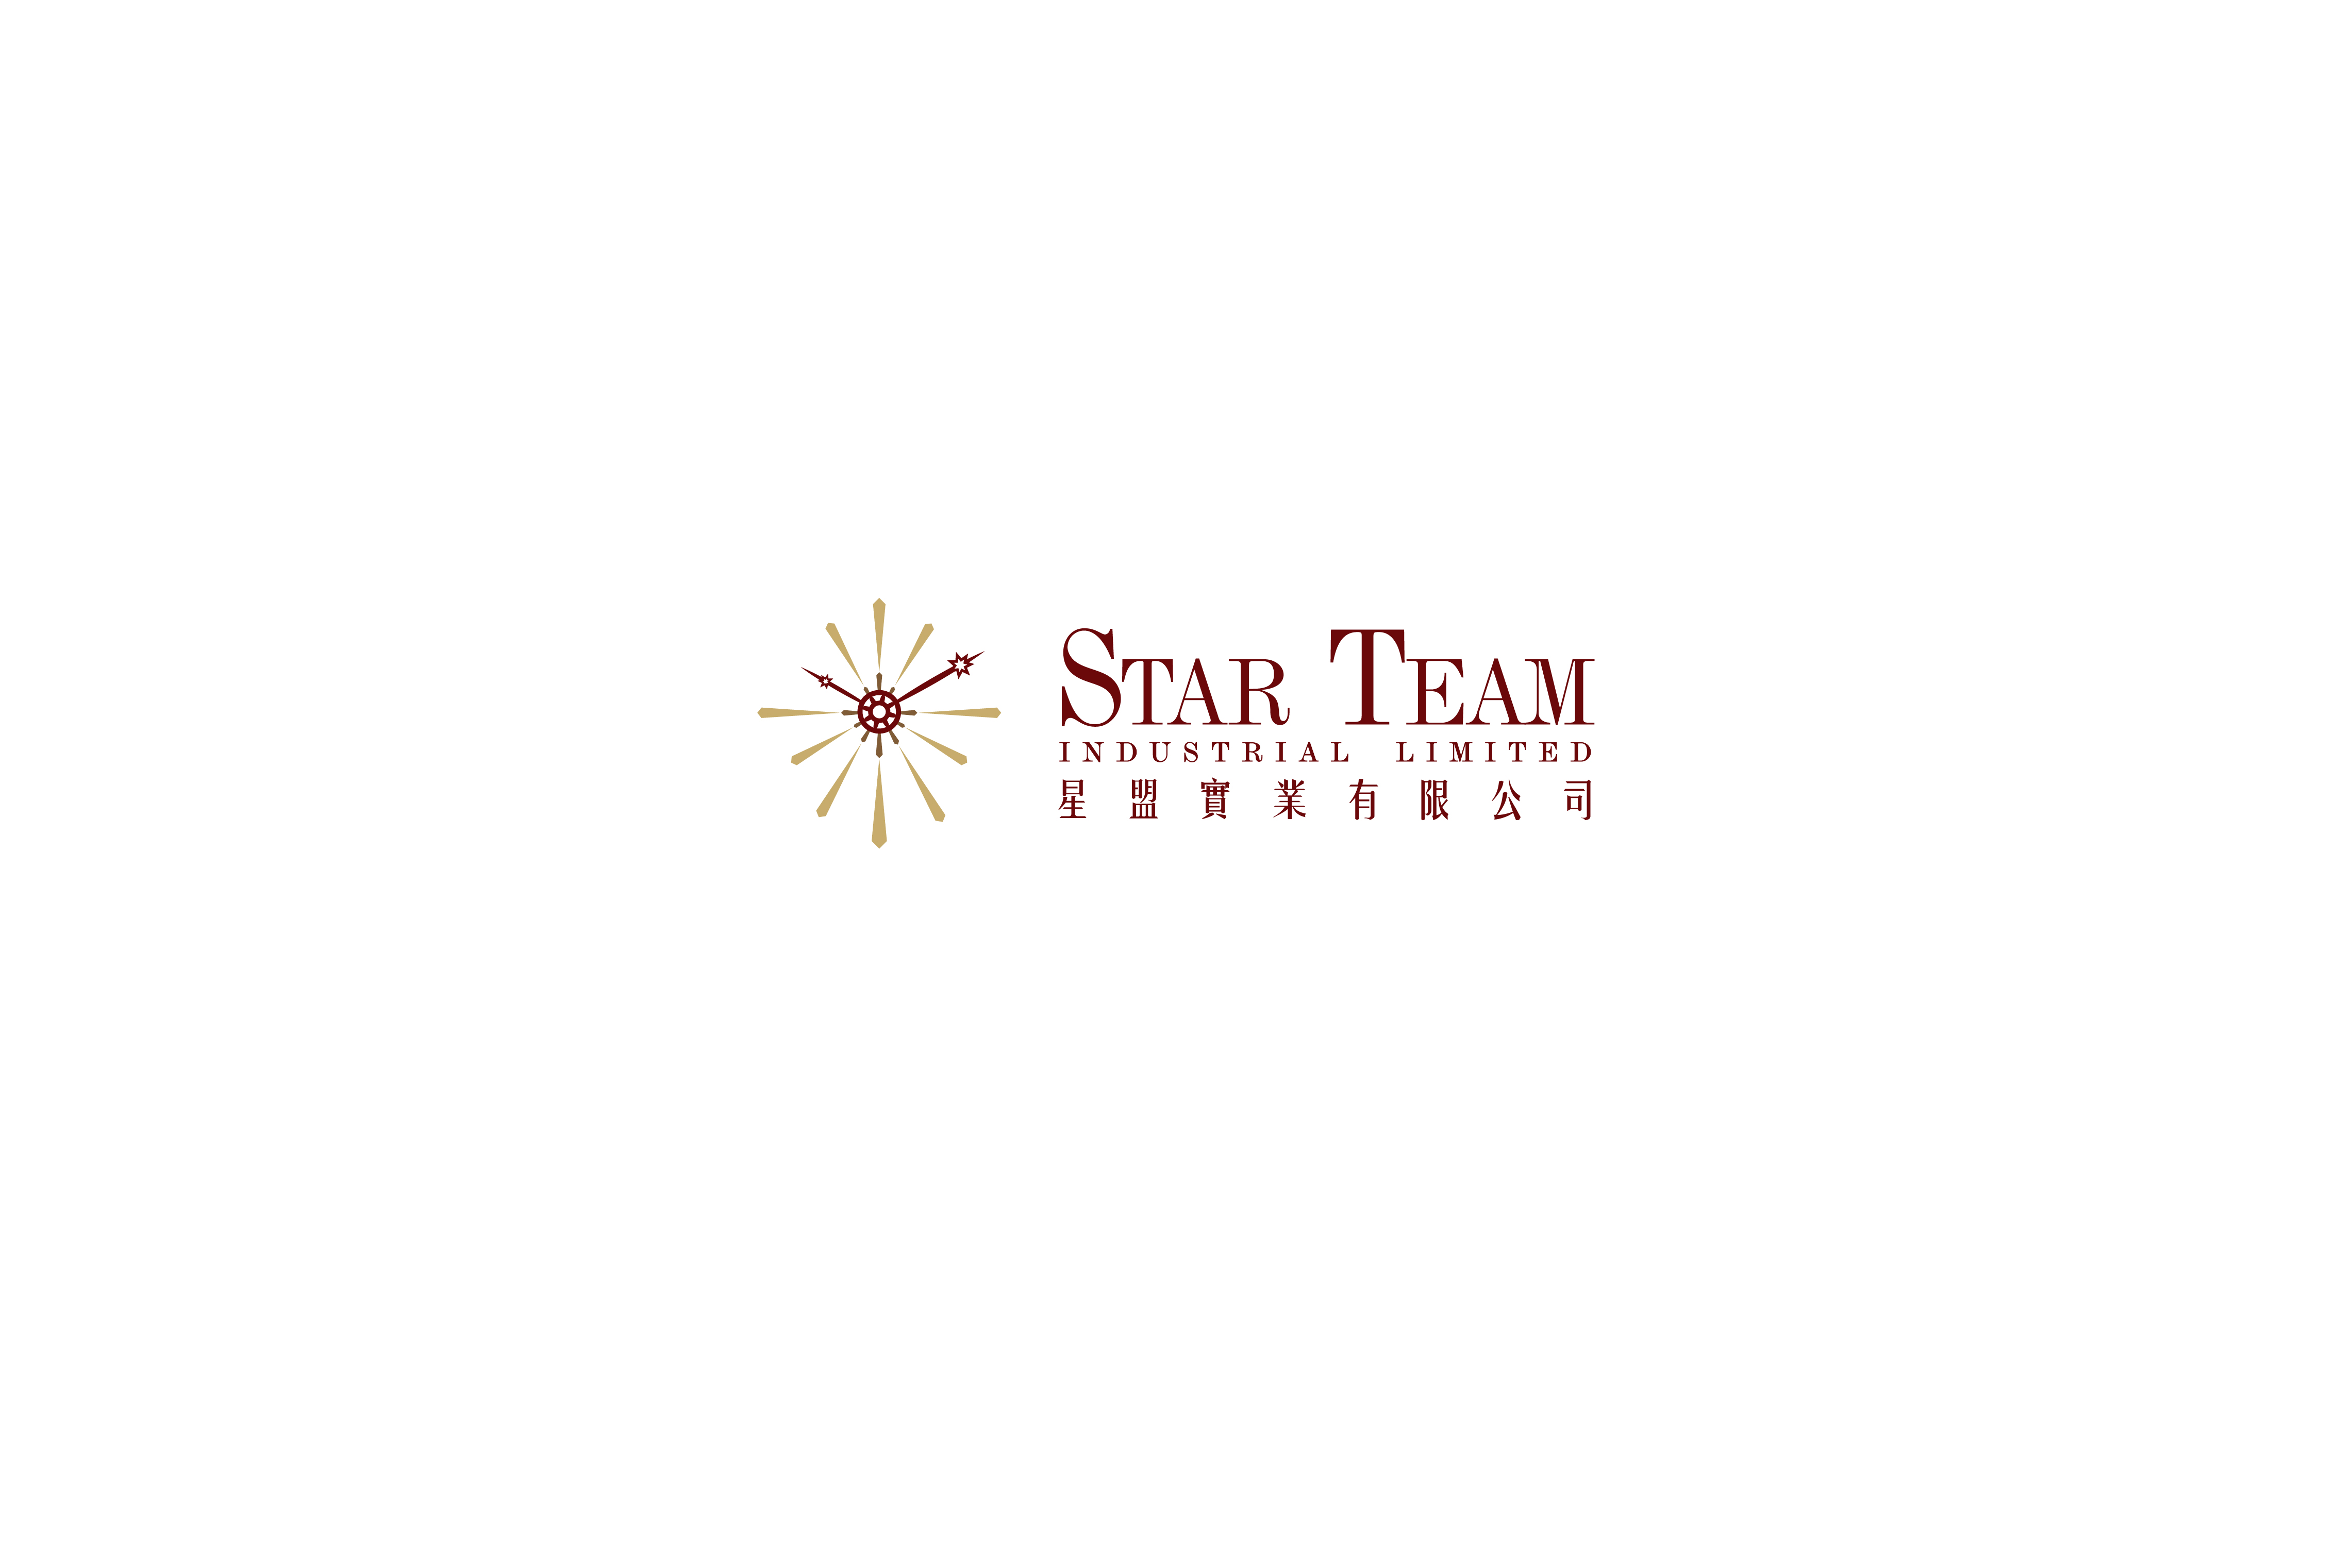 Star Team Industrial Limited